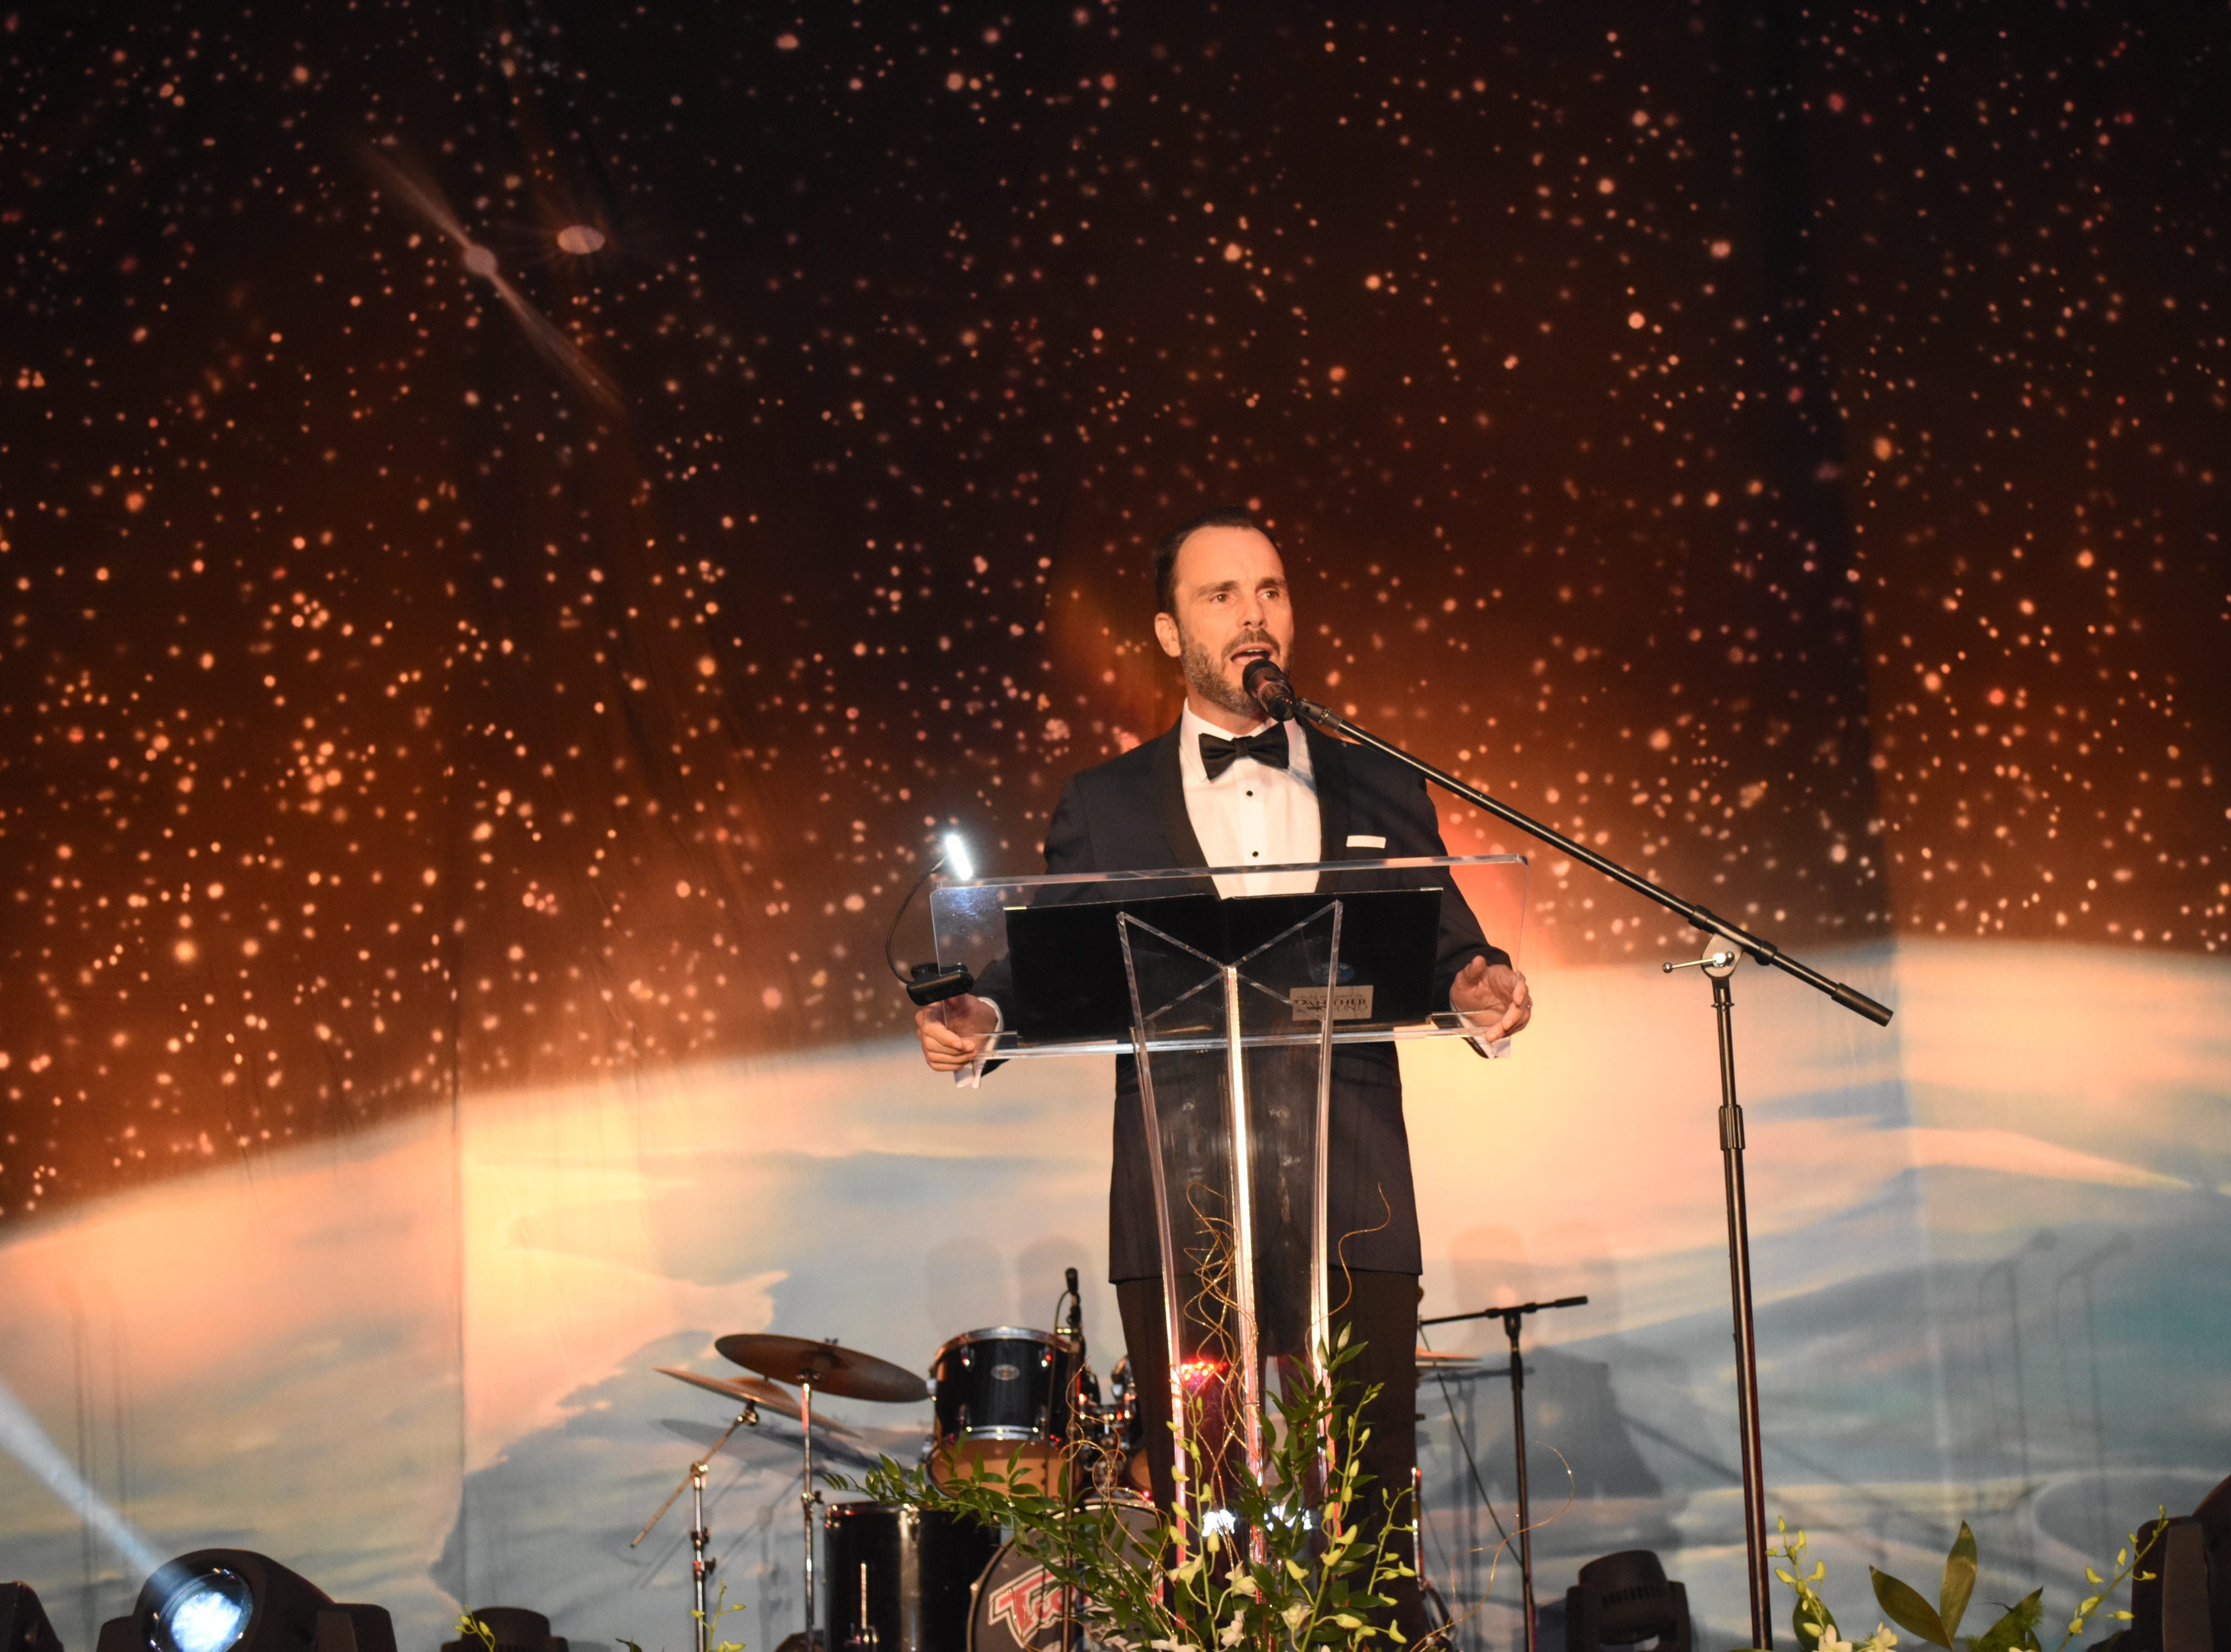 Florida Tech Execuitive Director of the Alumni Association and Master of Ceremonies Bino Campanini welcomes guests at Florida Tech's 60th Anniversary Homecoming Gala Oct. 13, 2018, at the Clemente Center.